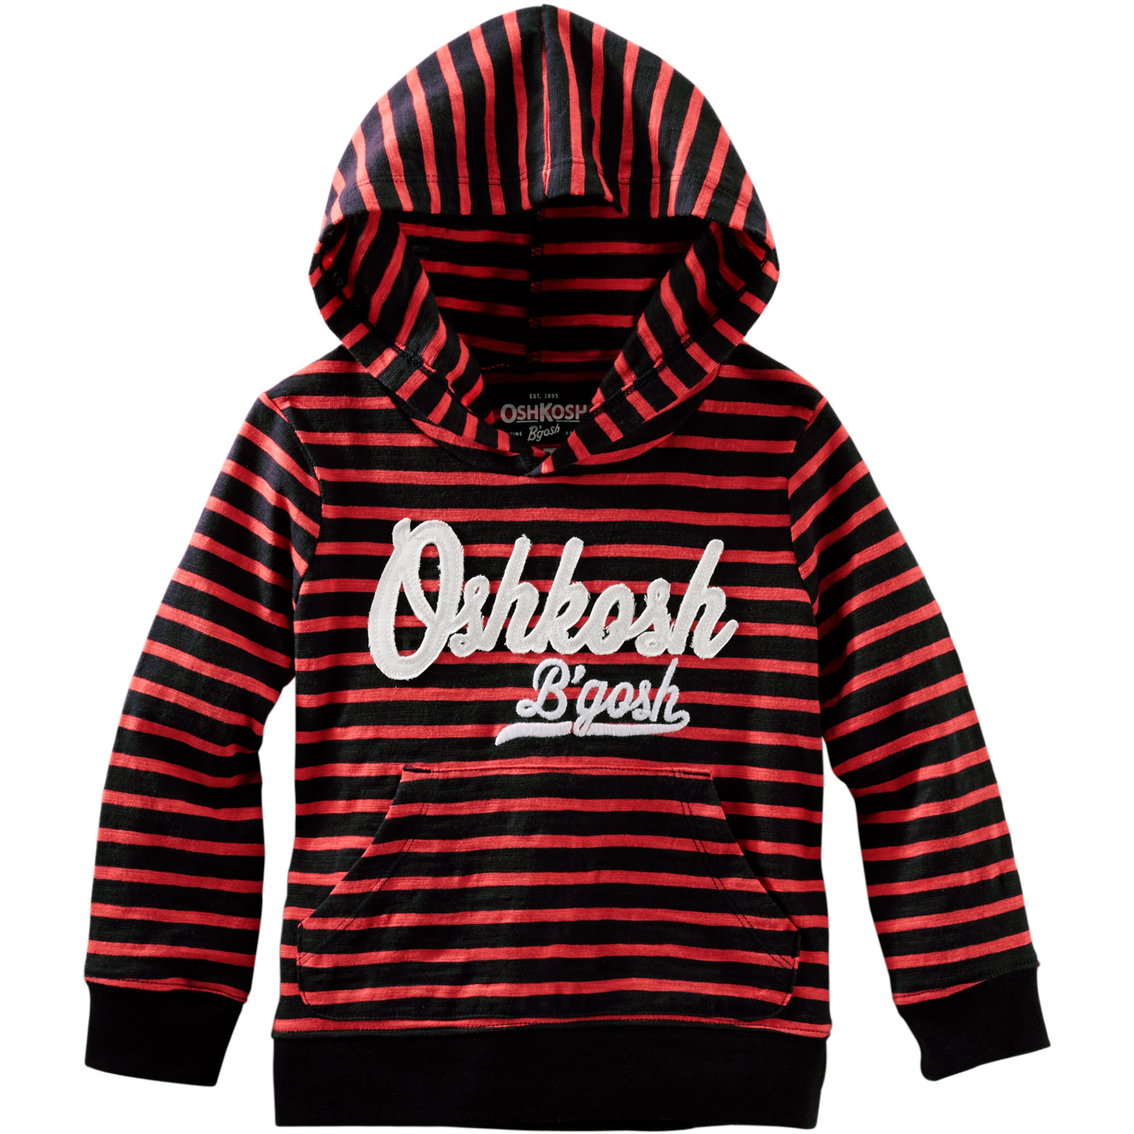 Shop stylish clothes for girls from Oshkosh. Find cute girls clothes from the trusted name in kids' clothes.